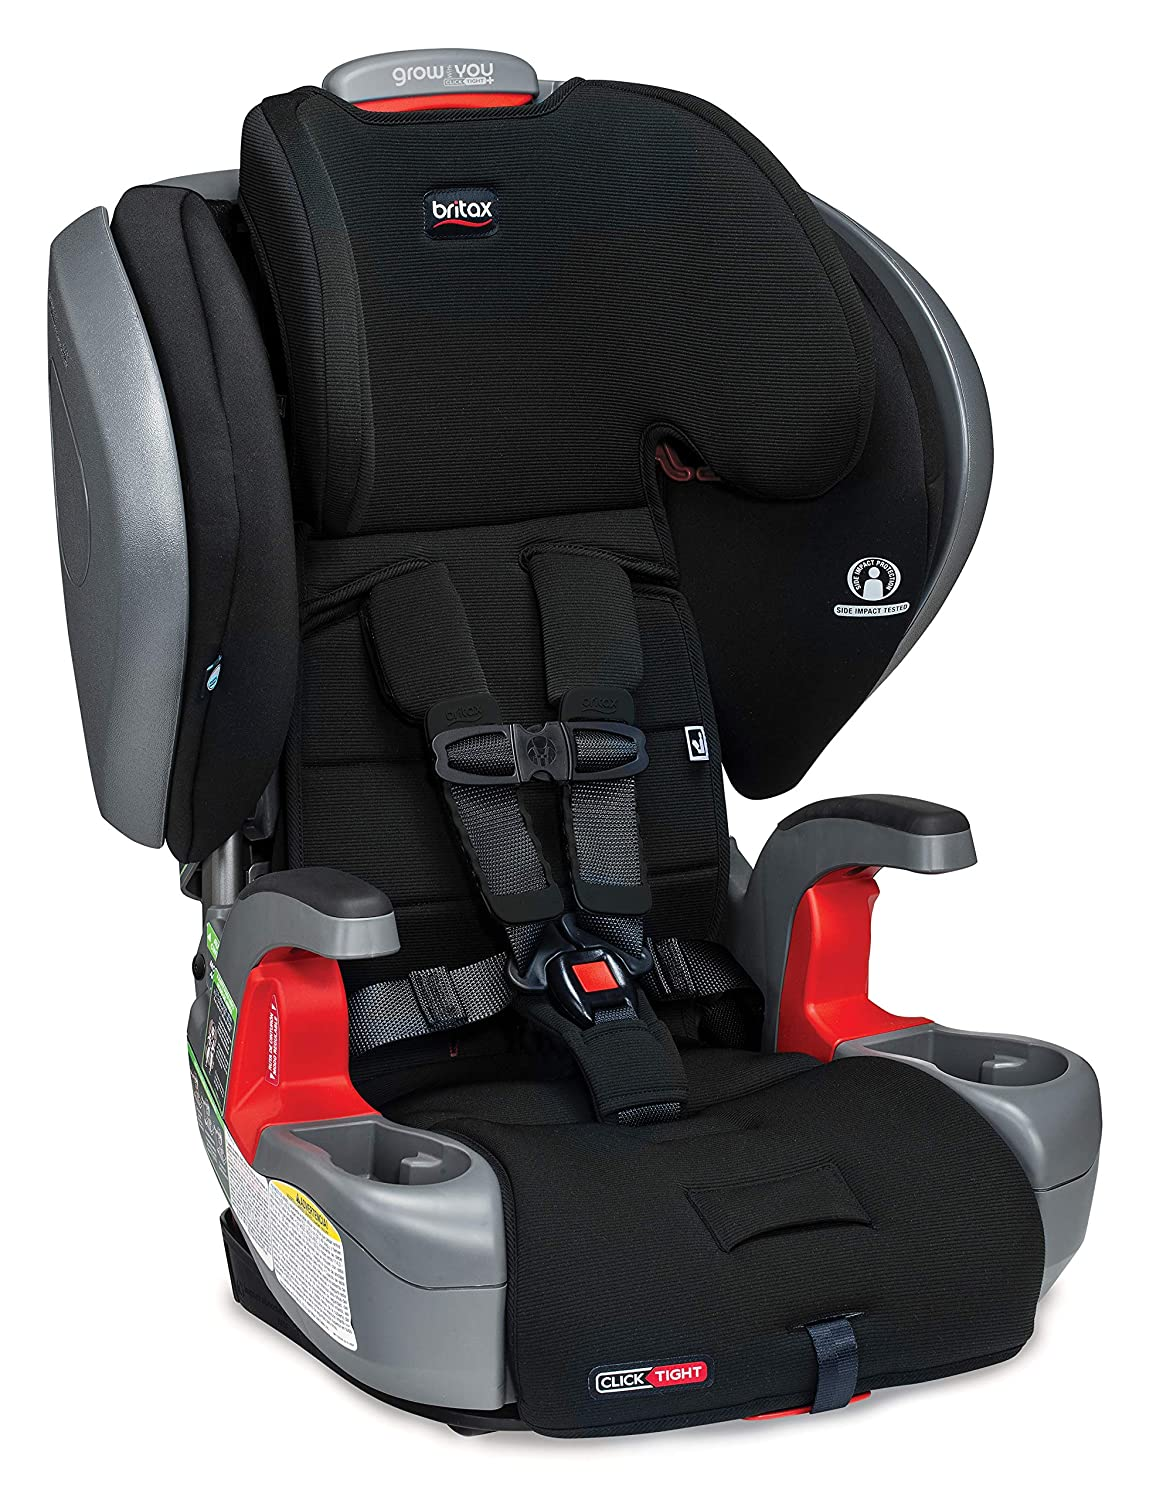 Top 9 Best Car Seat For Toddlers (2020 Reviews & Buying Guide) 8